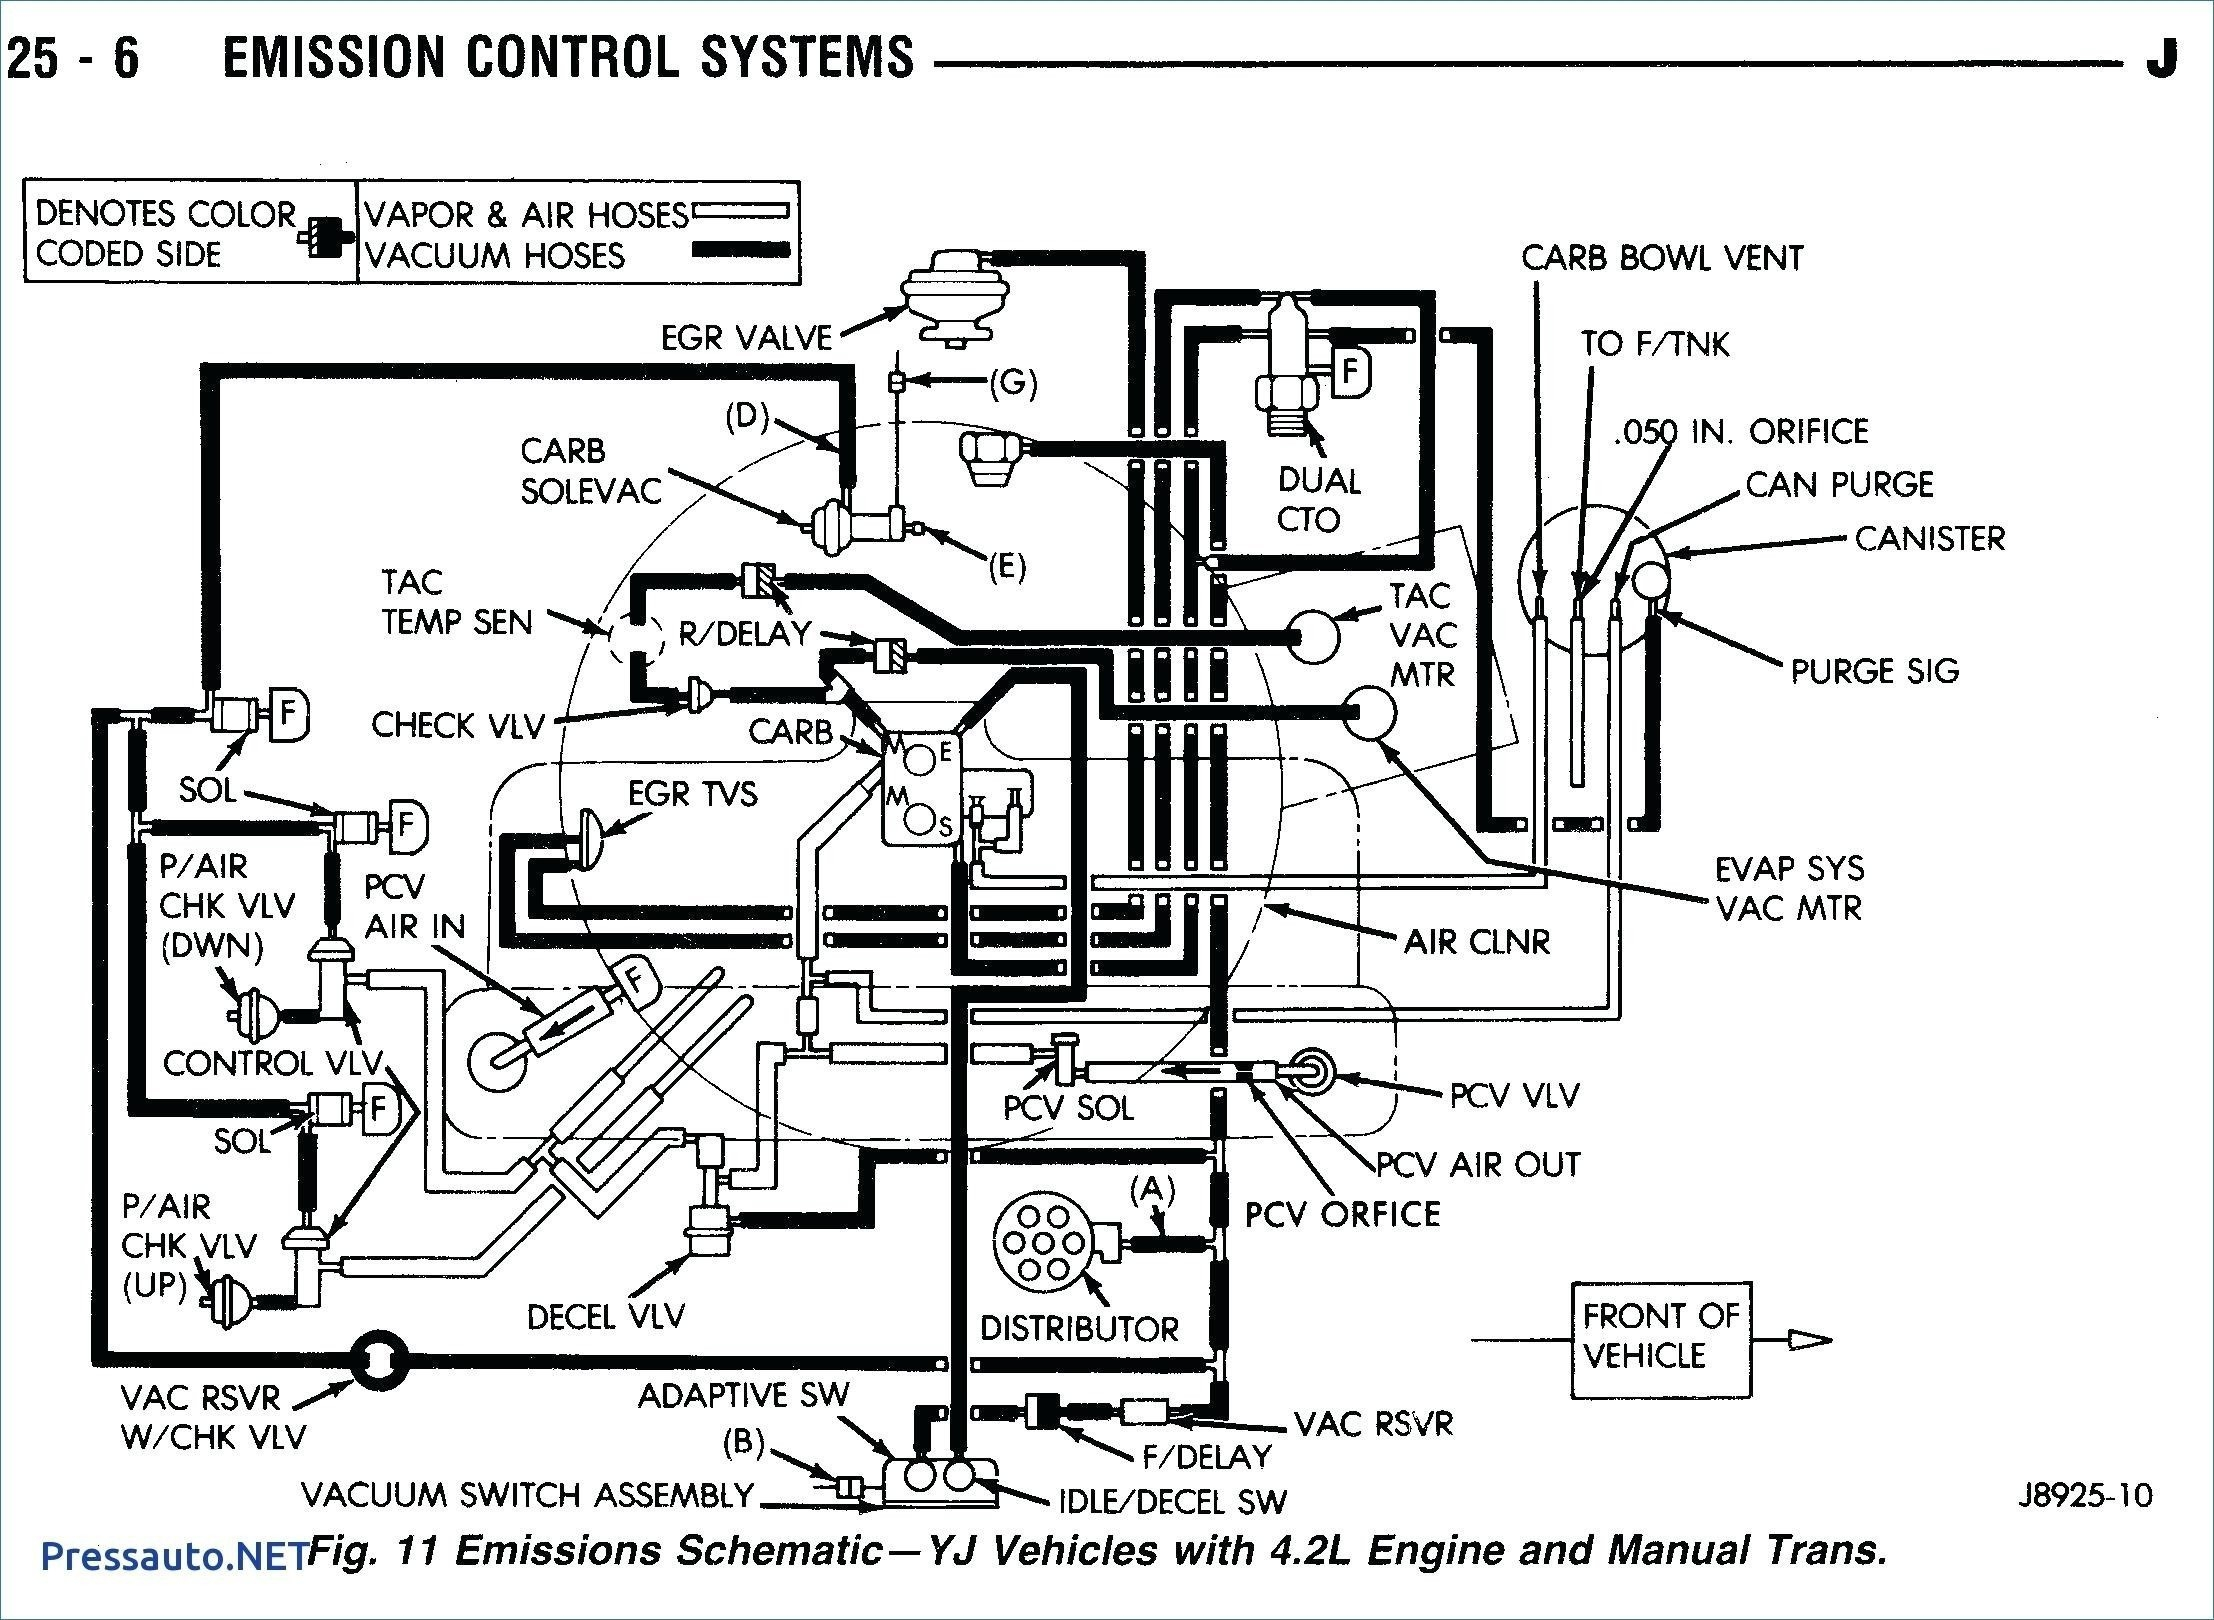 1976 jeep wiring diagram jeep wiring diagram wrangler 1992 jeep wrangler wiring schematic | free wiring diagram #11